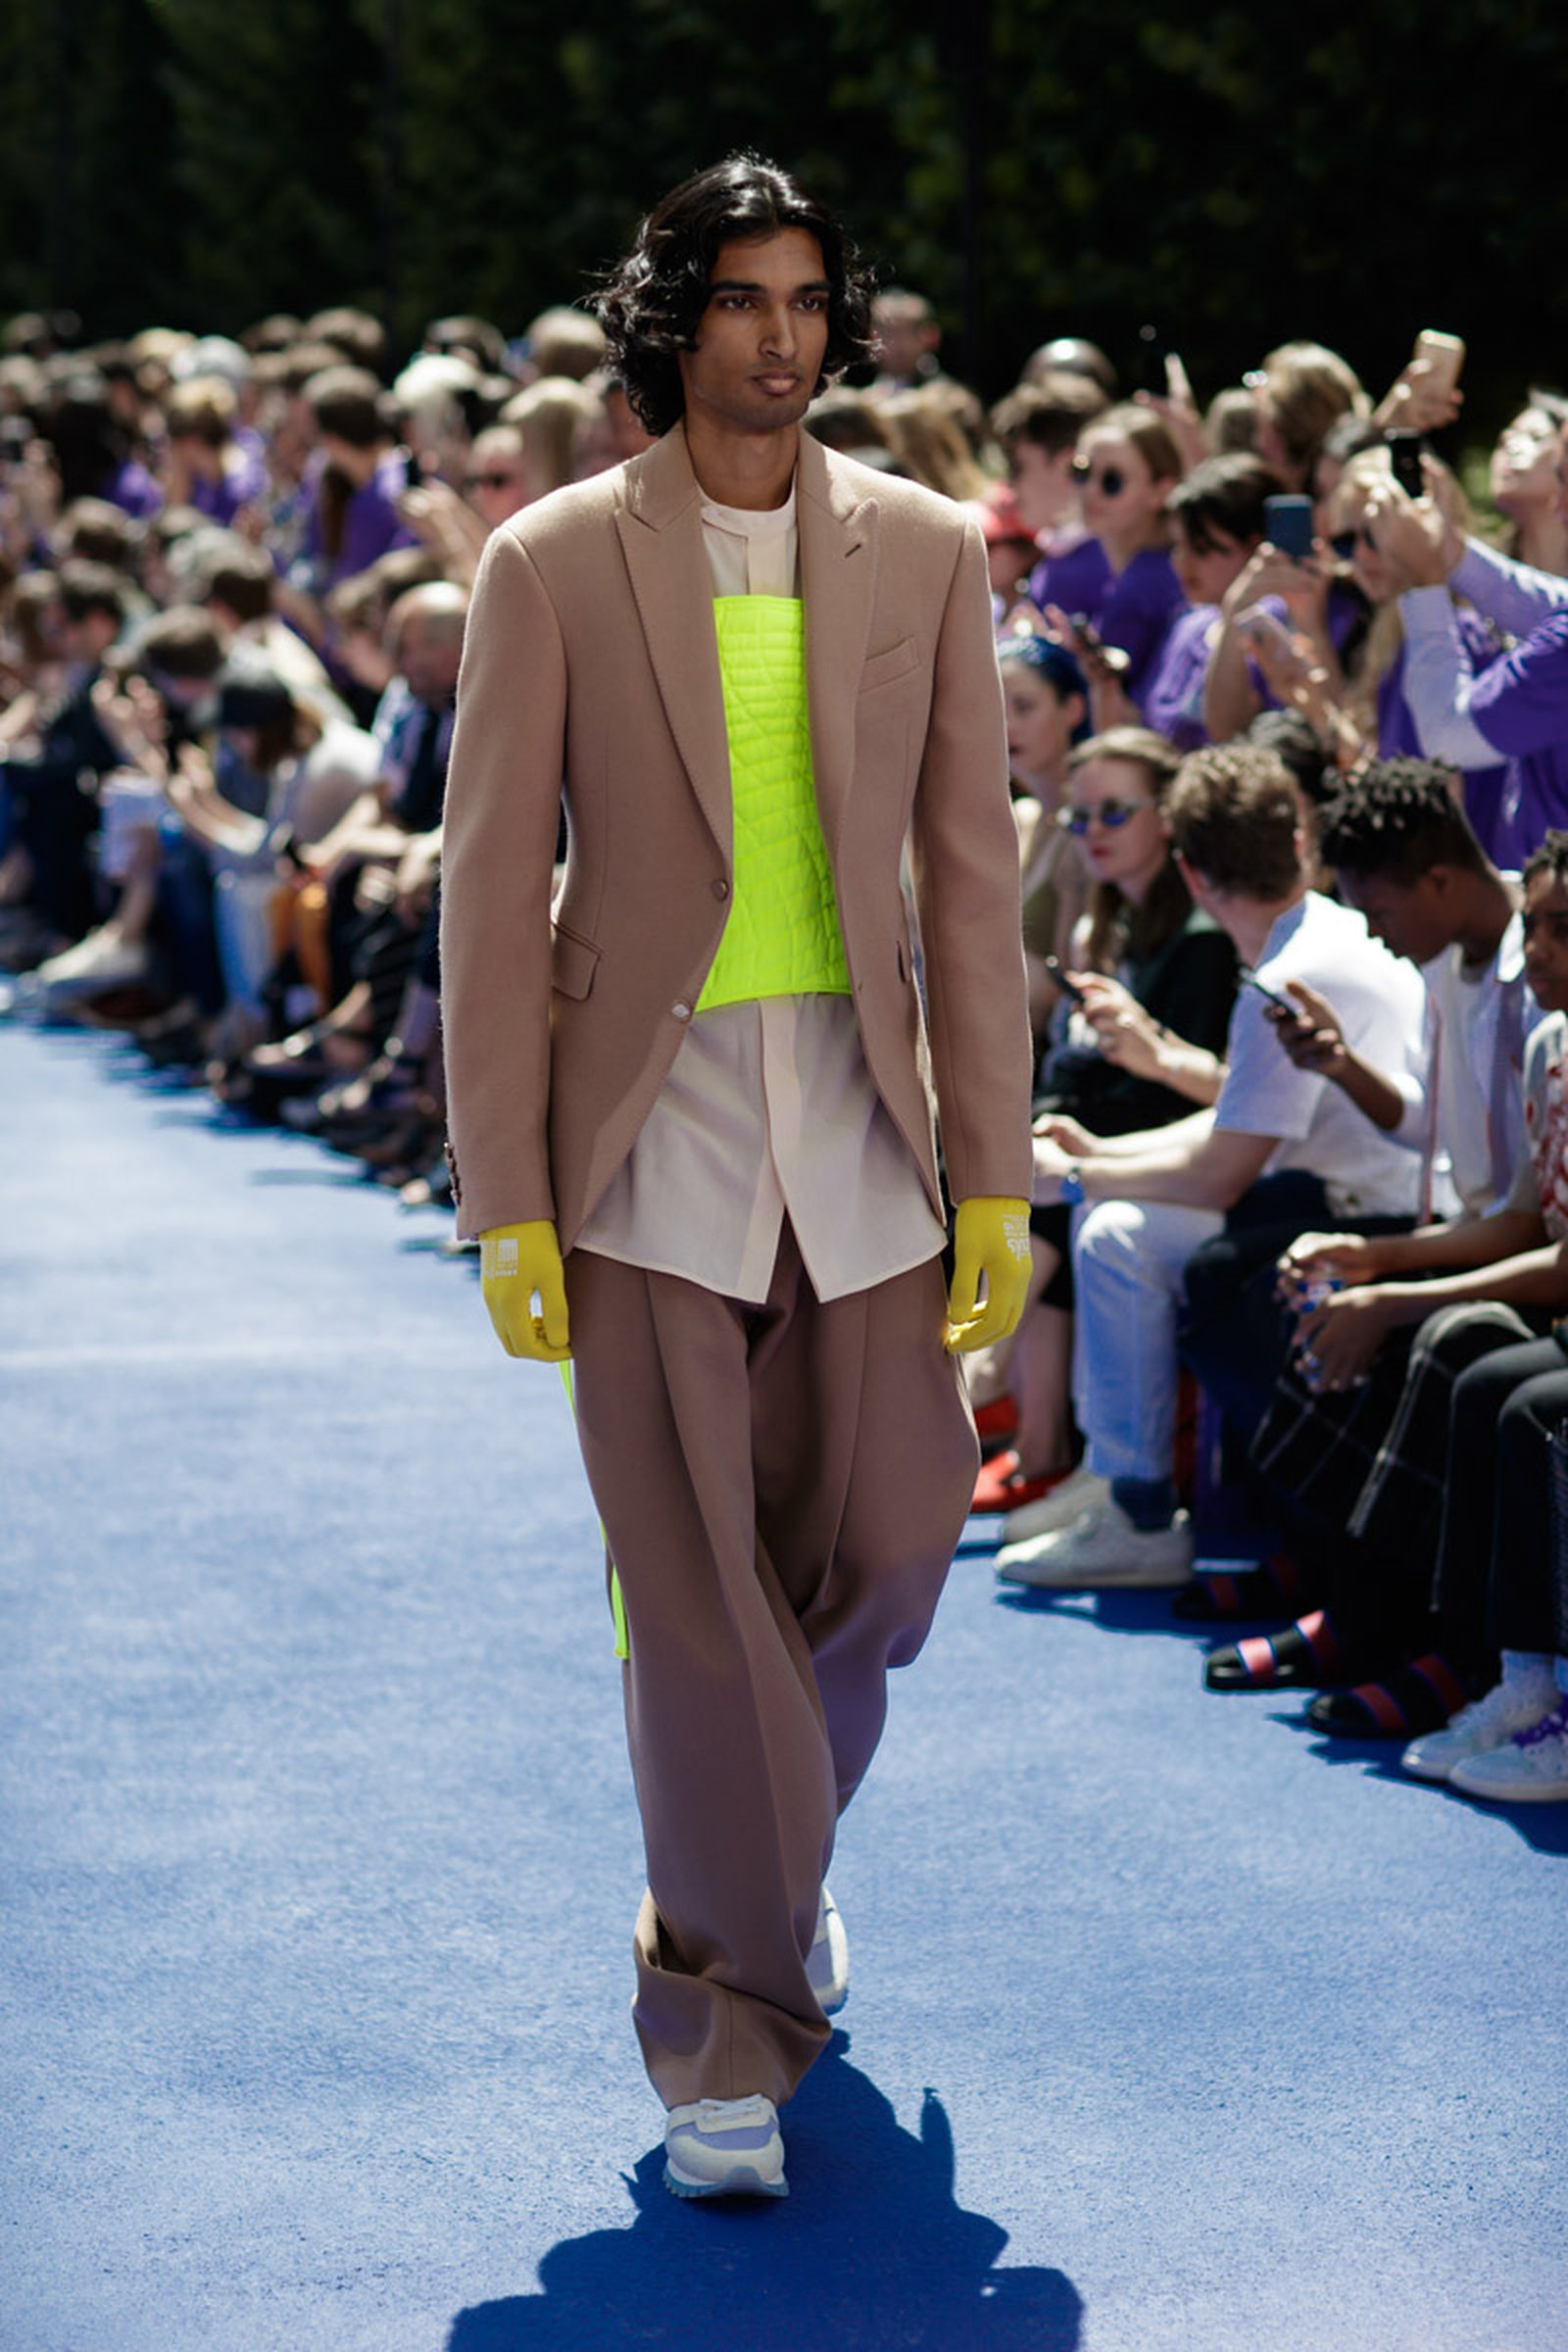 tailoring making comeback heres Balenciaga Louis Vuitton celine